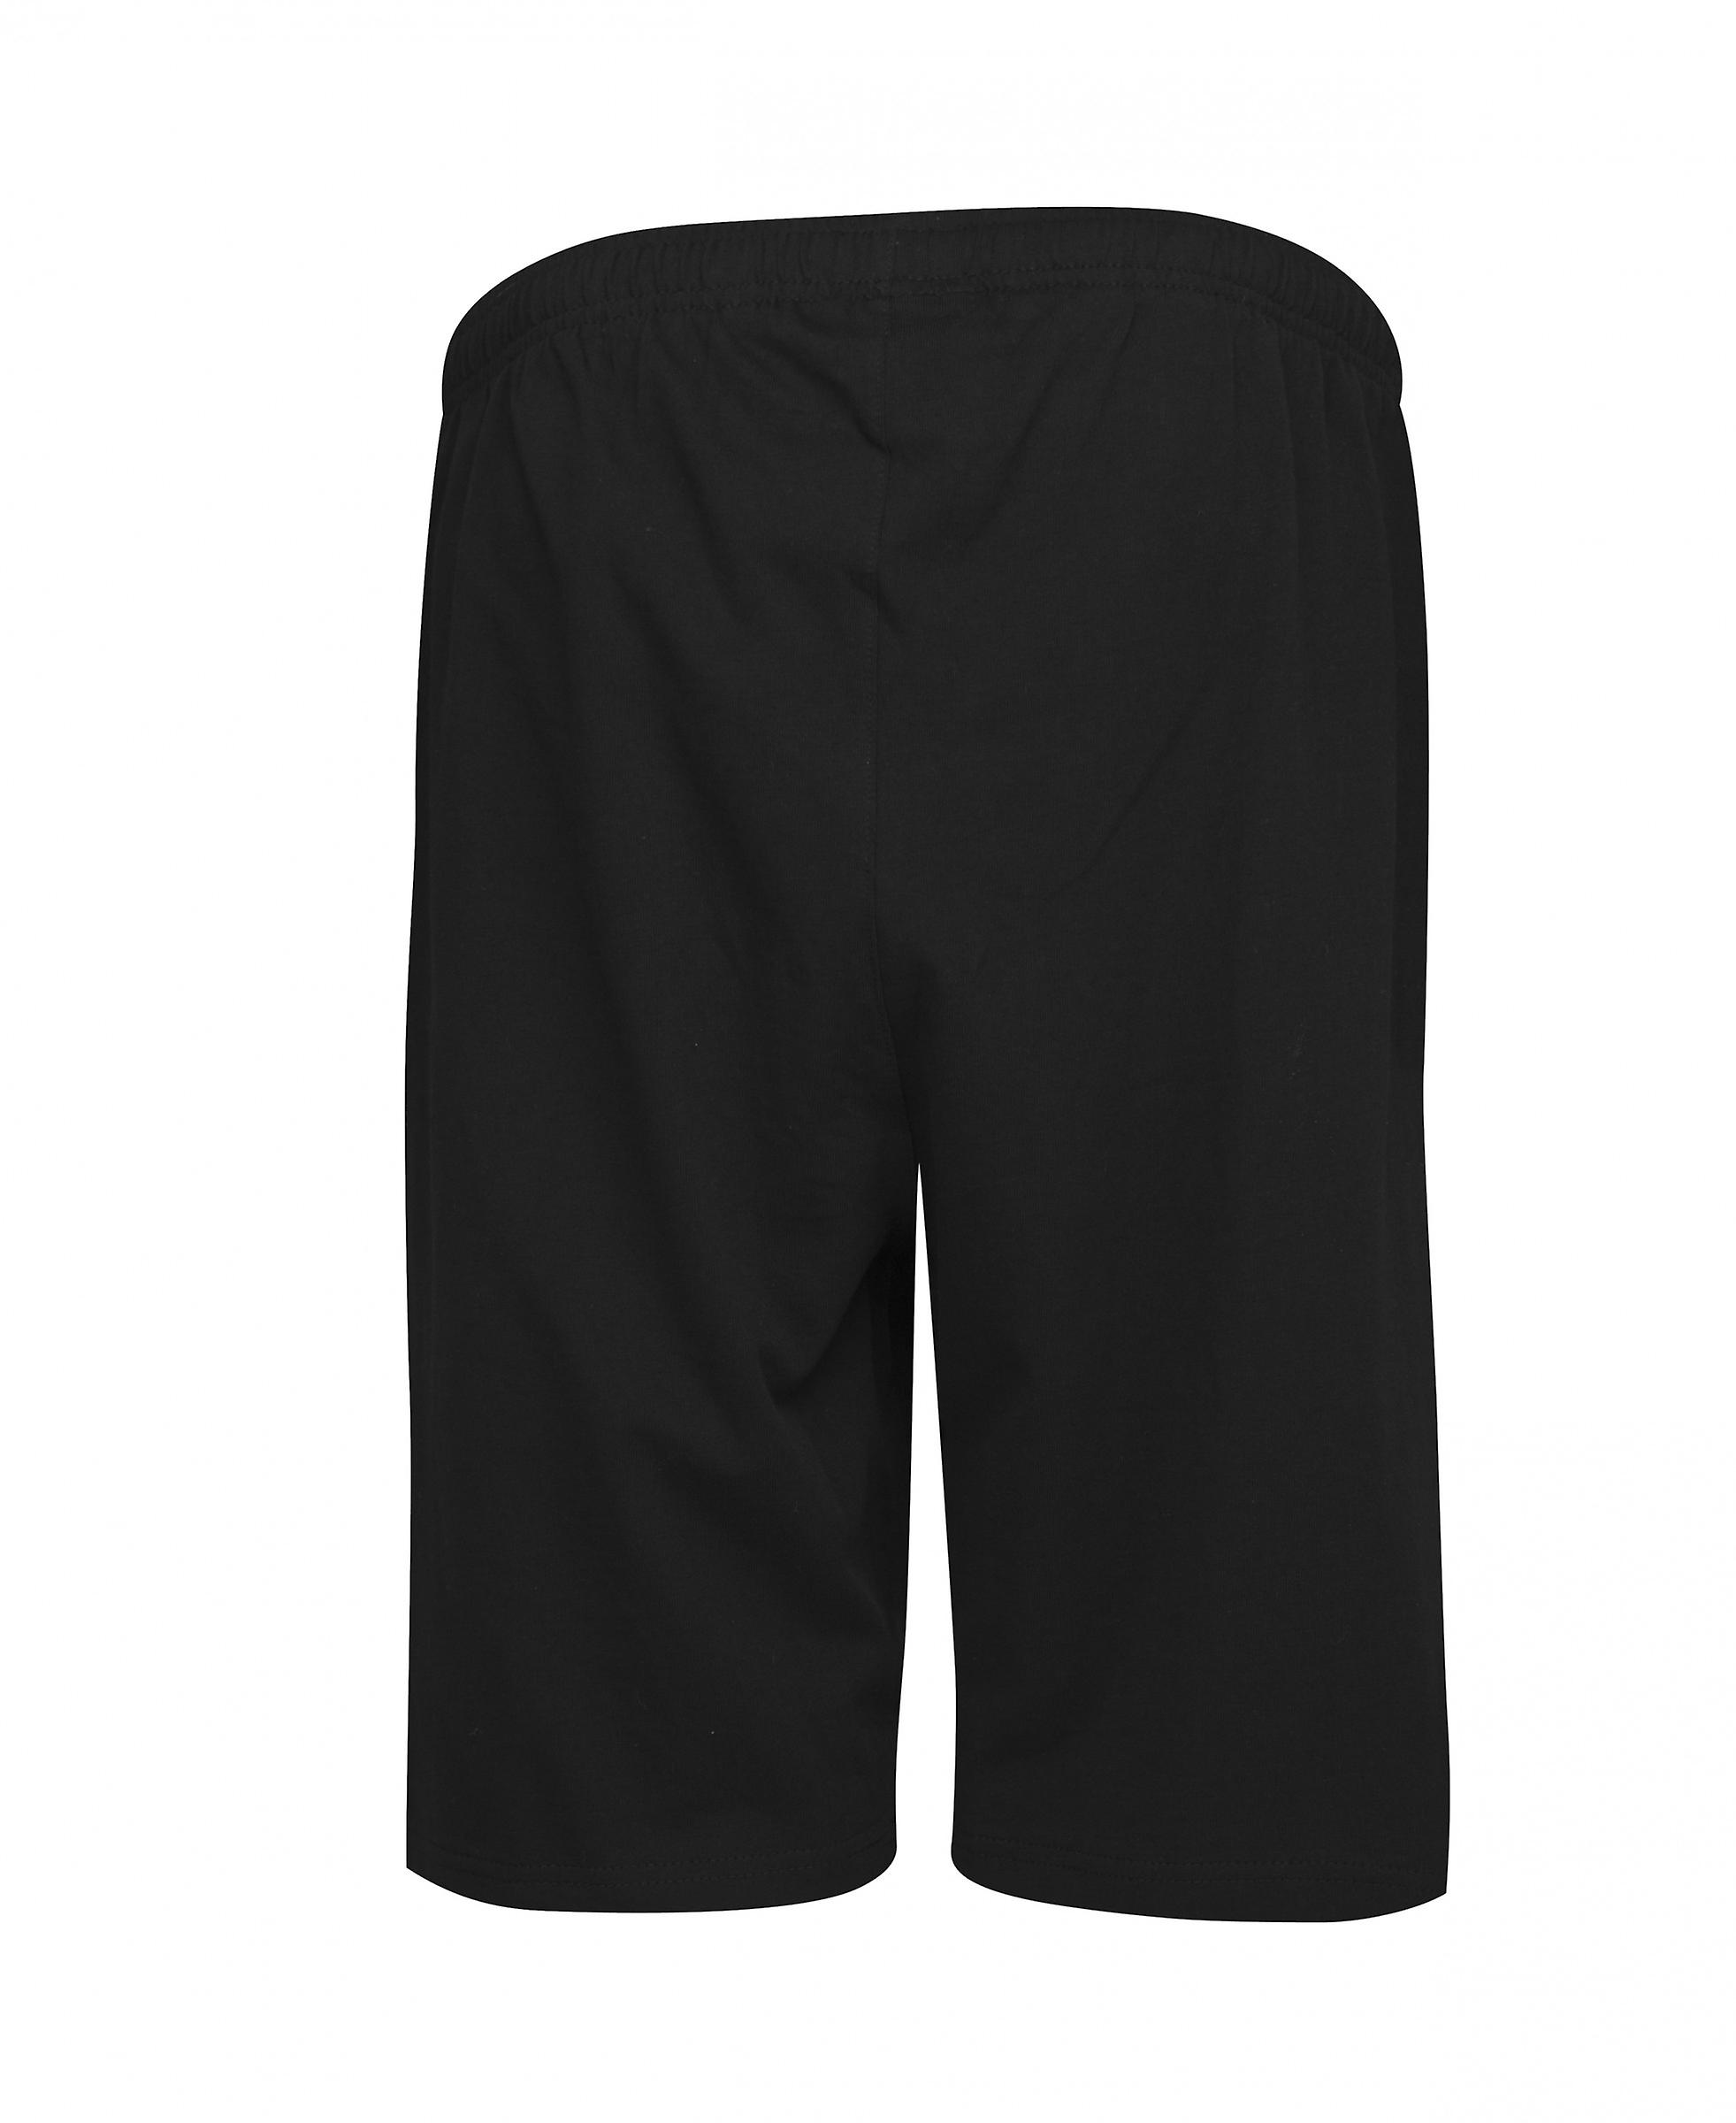 William men's shorts basic